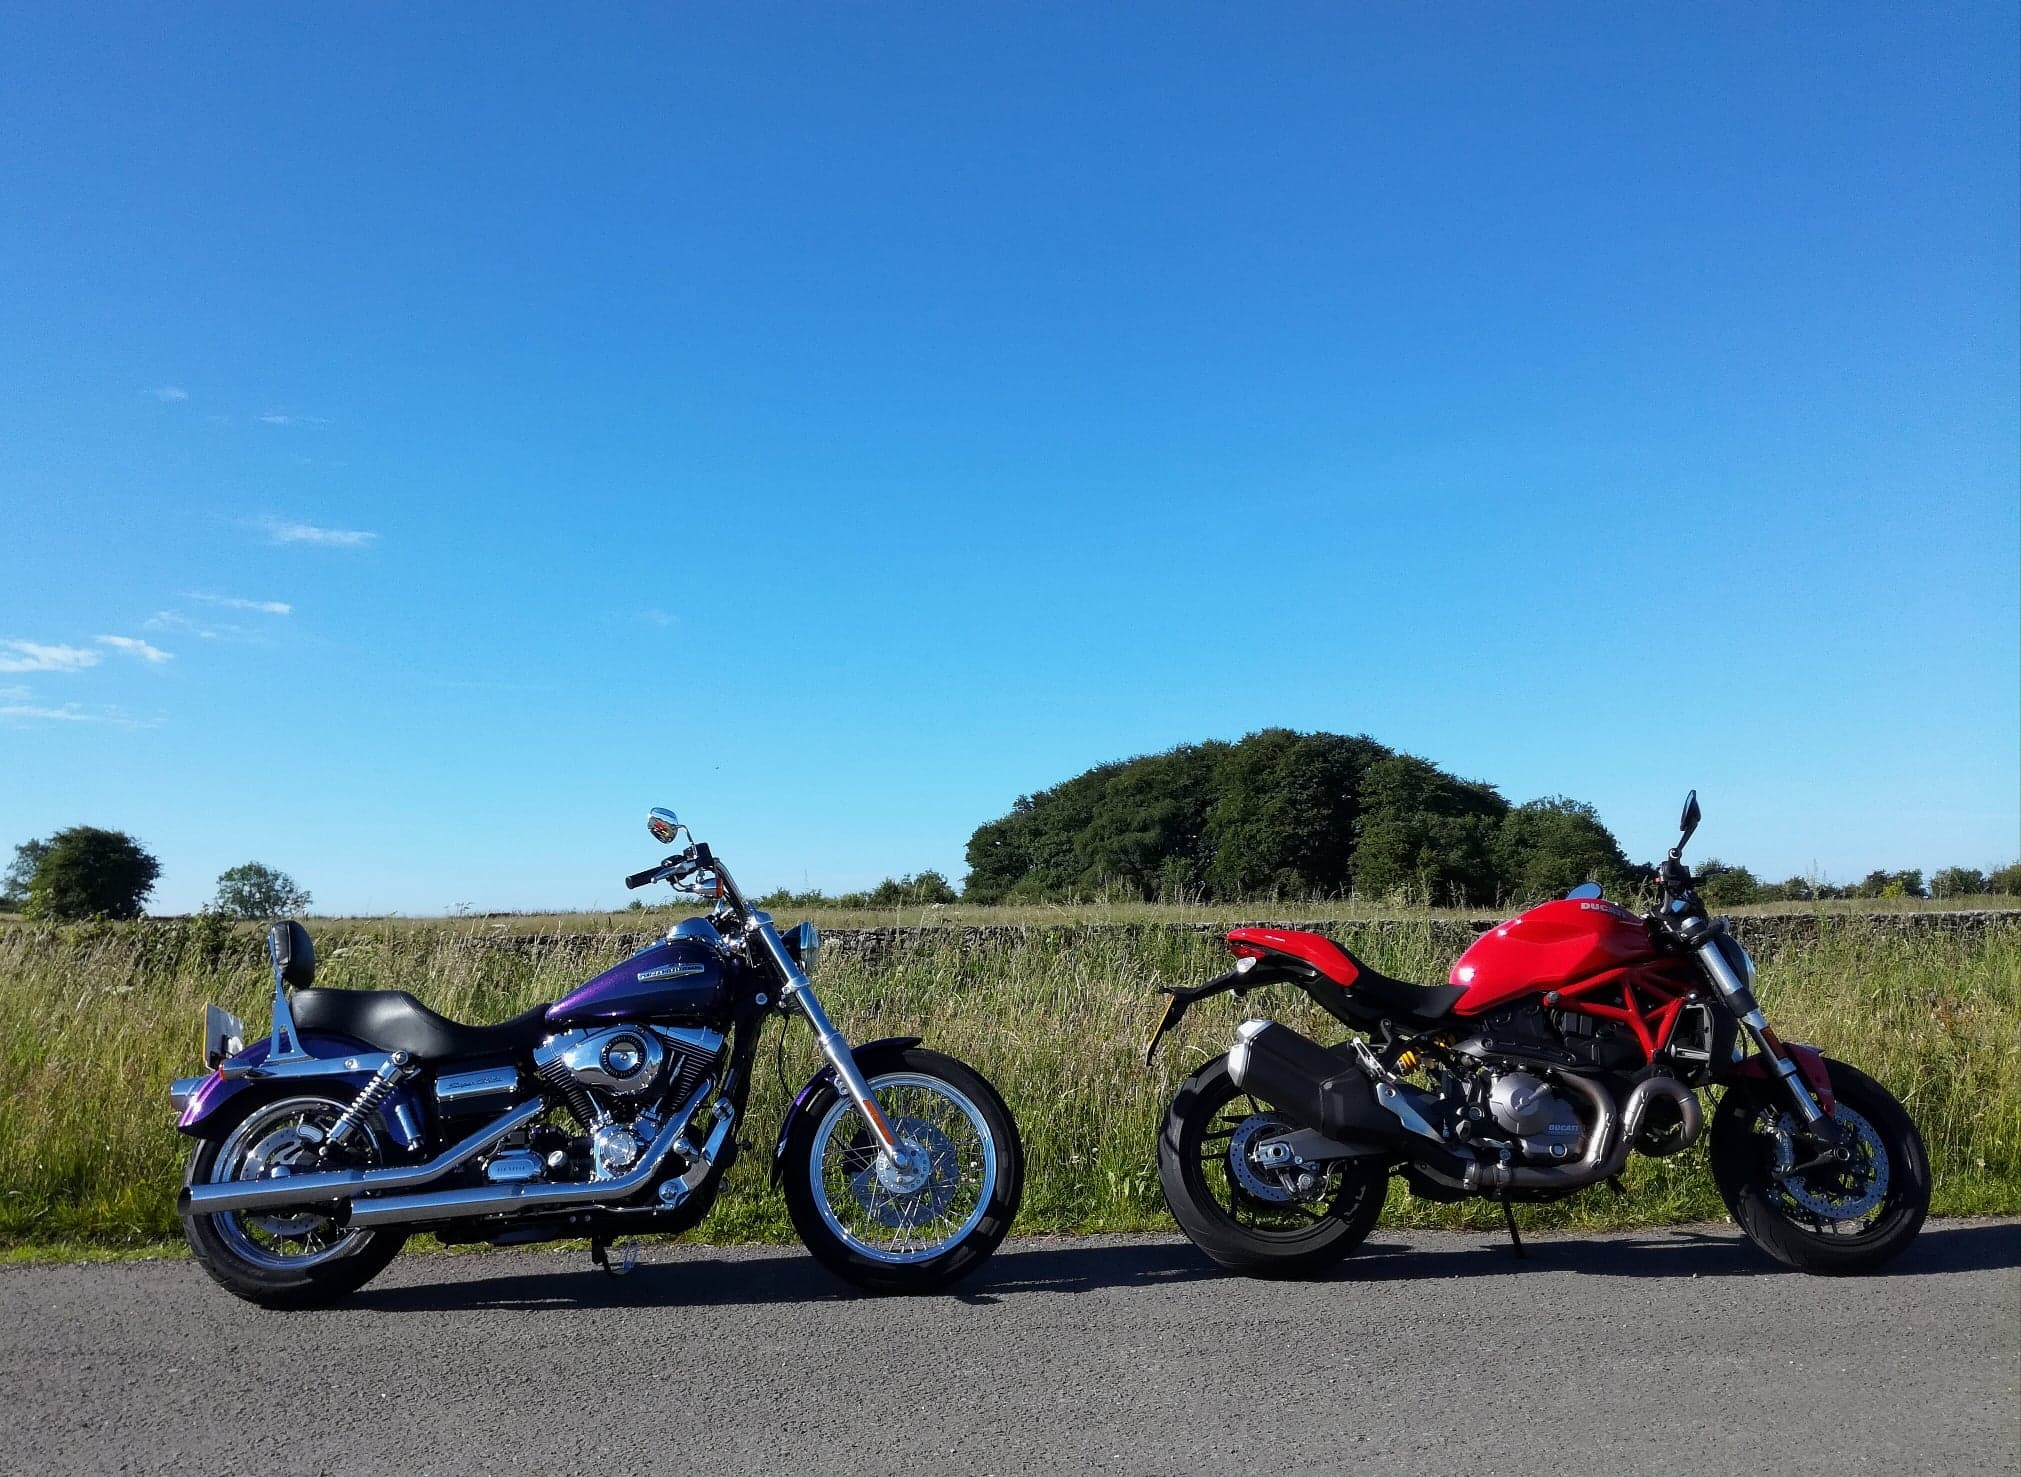 A summer morning on the Mendips with Andy's Harley and Janet's Ducati